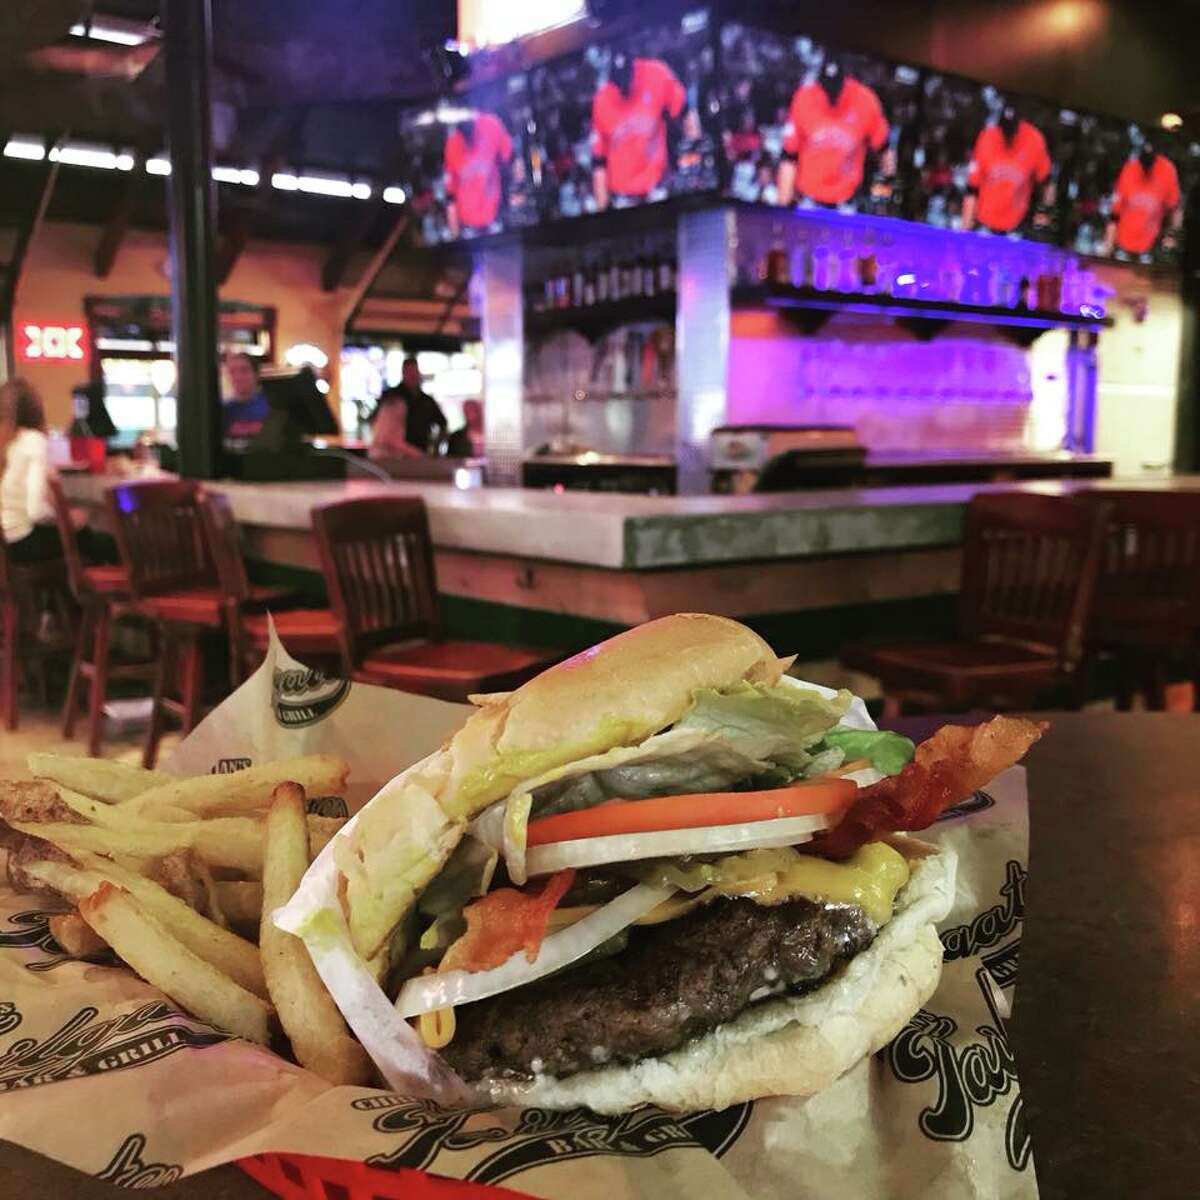 Christian's Tailgate Bar & Grill just opened its fifth Houston location at 5114 Kirby.